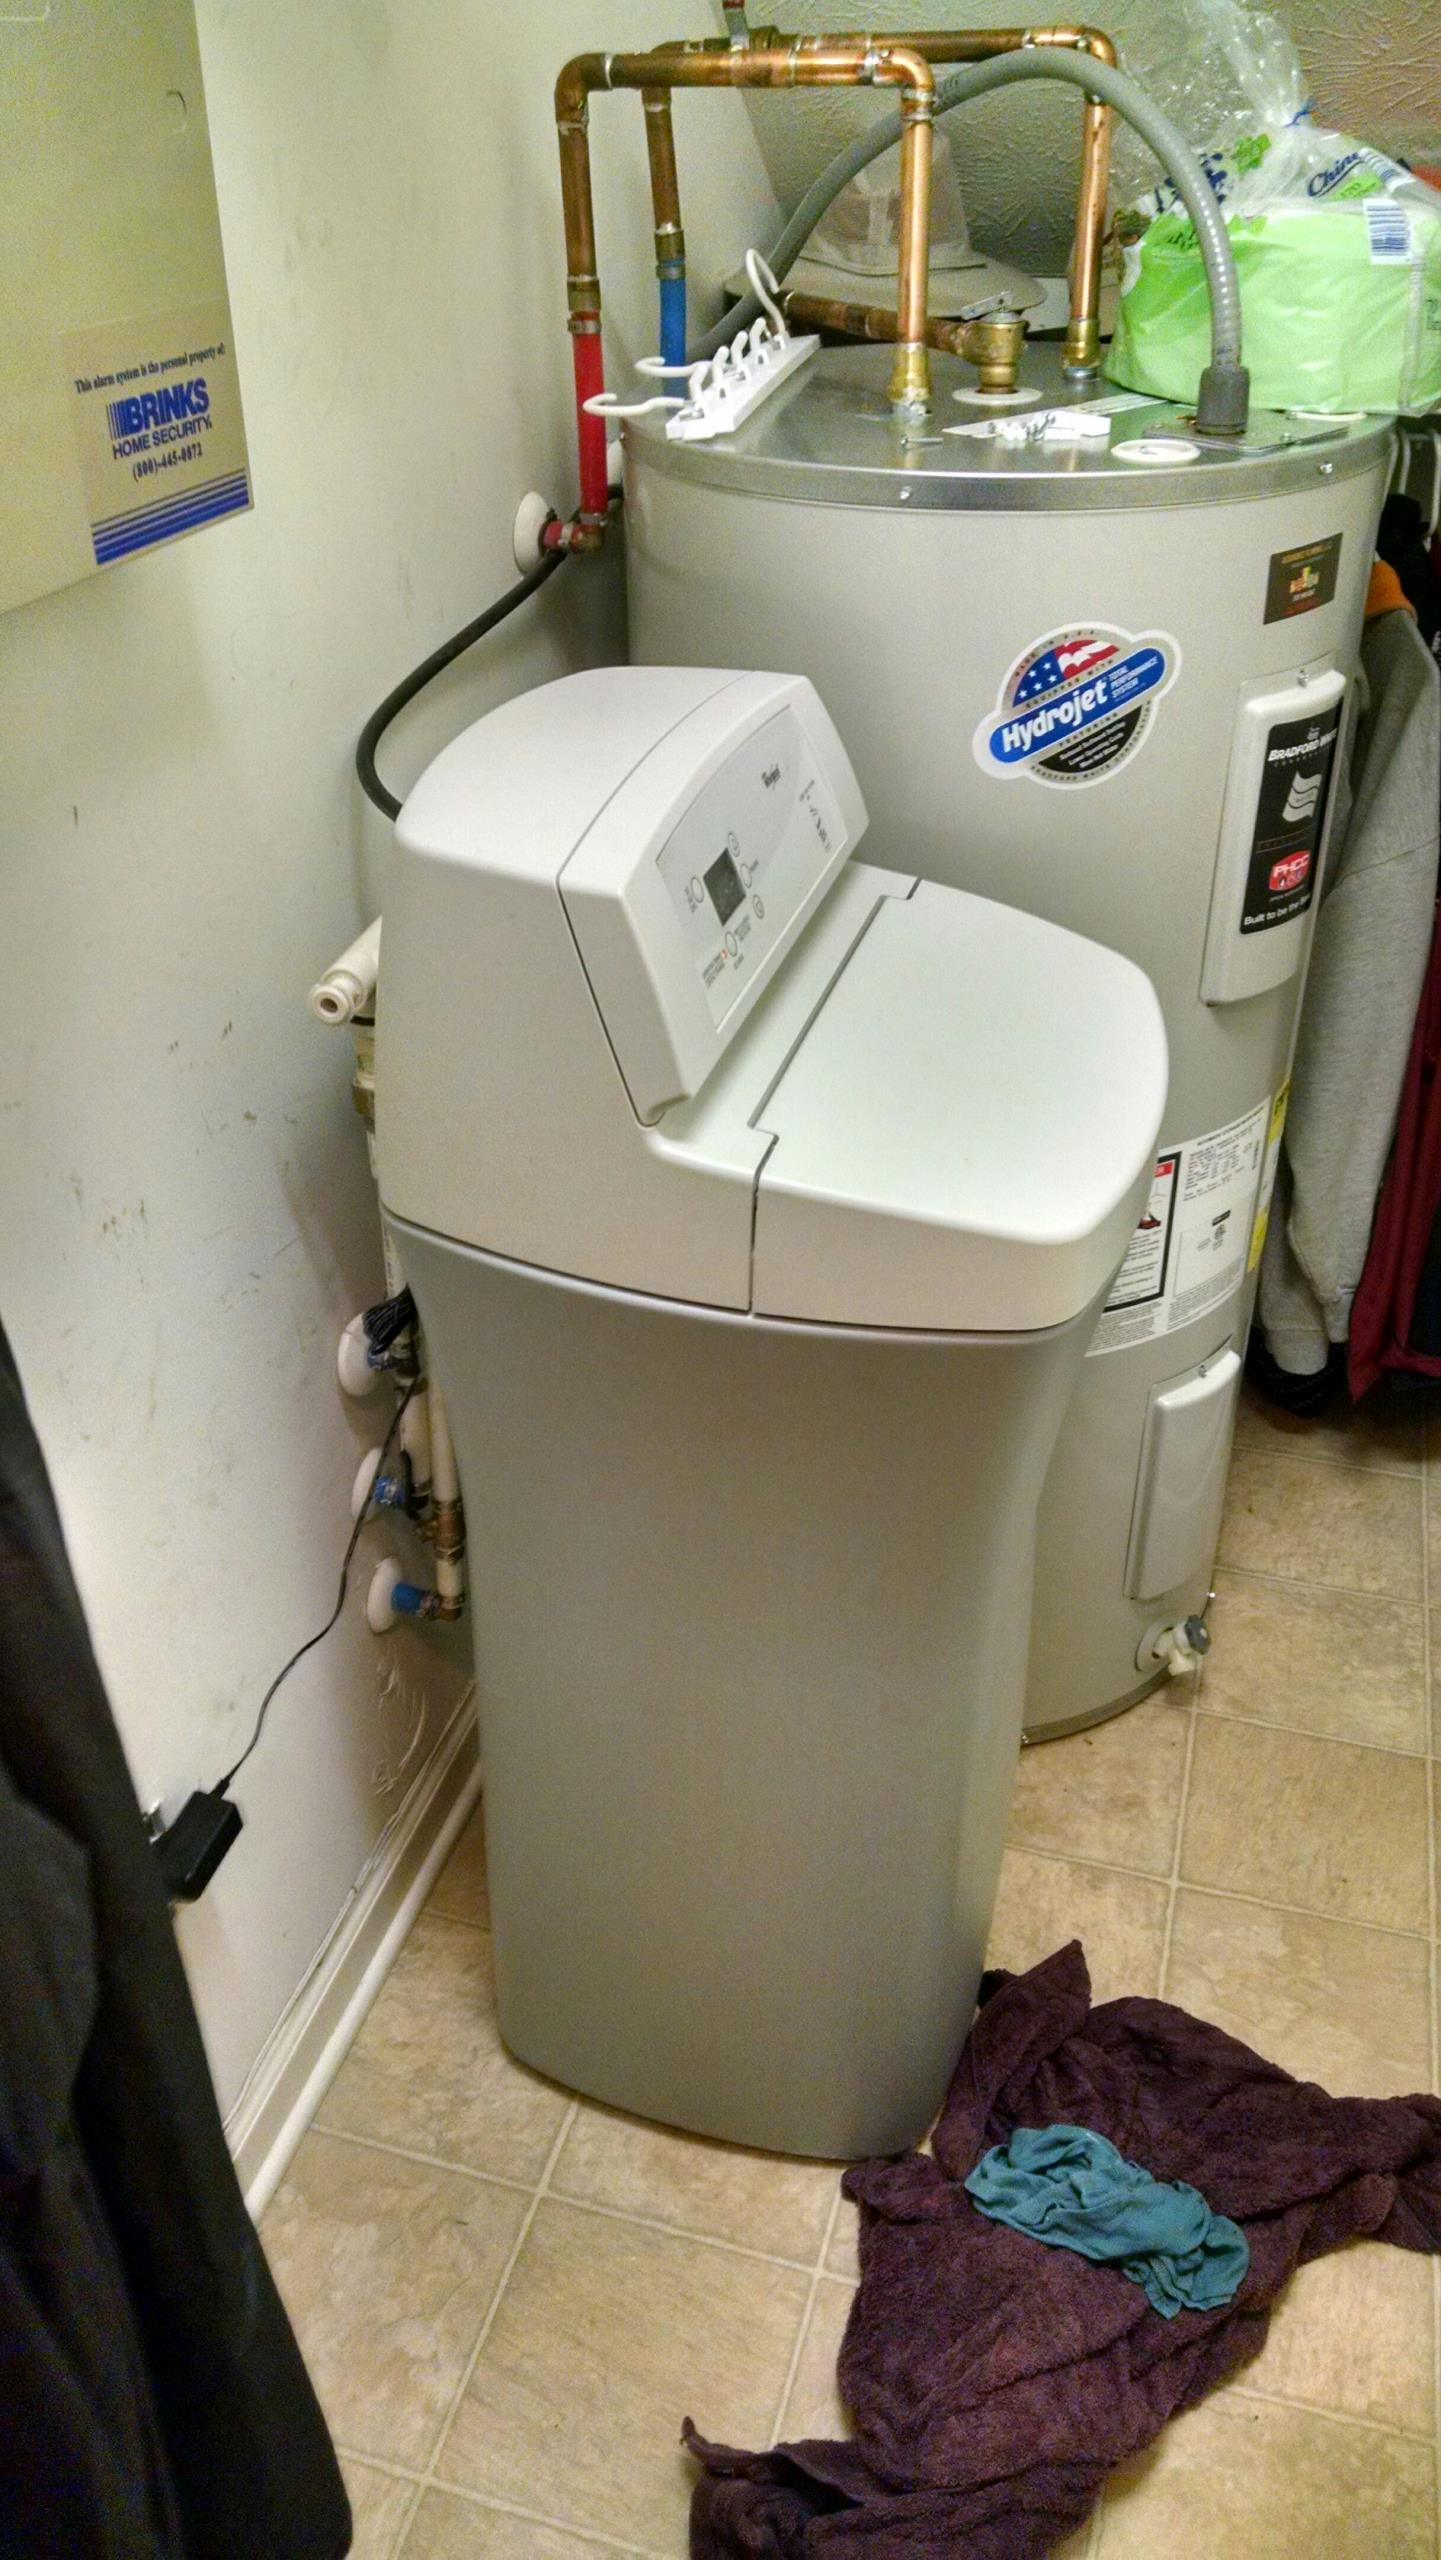 Zionsville, IN - Water softener leak